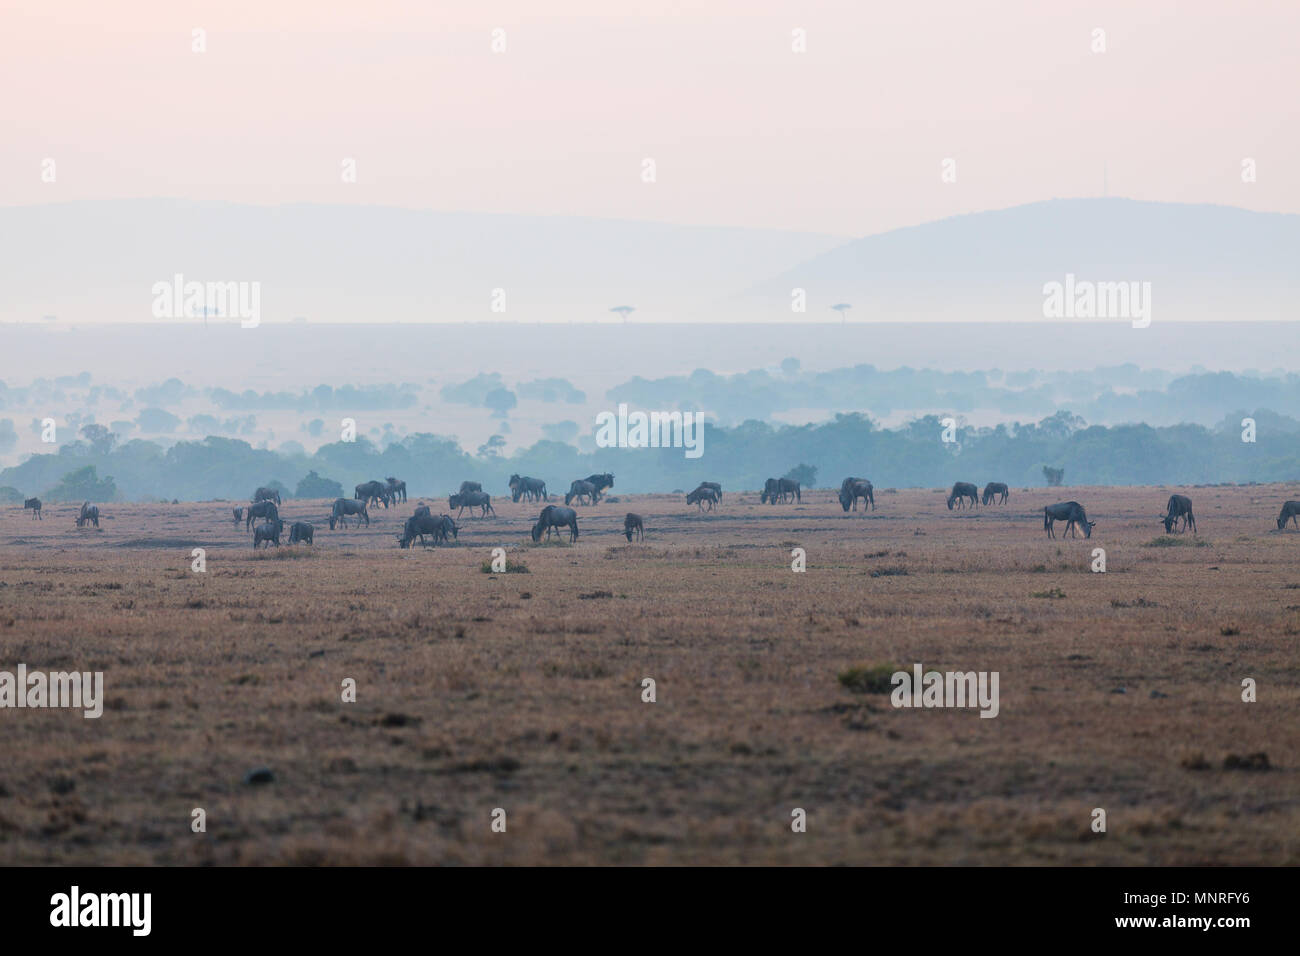 Wildebeests early morning in Masai Mara Kenya - Stock Image